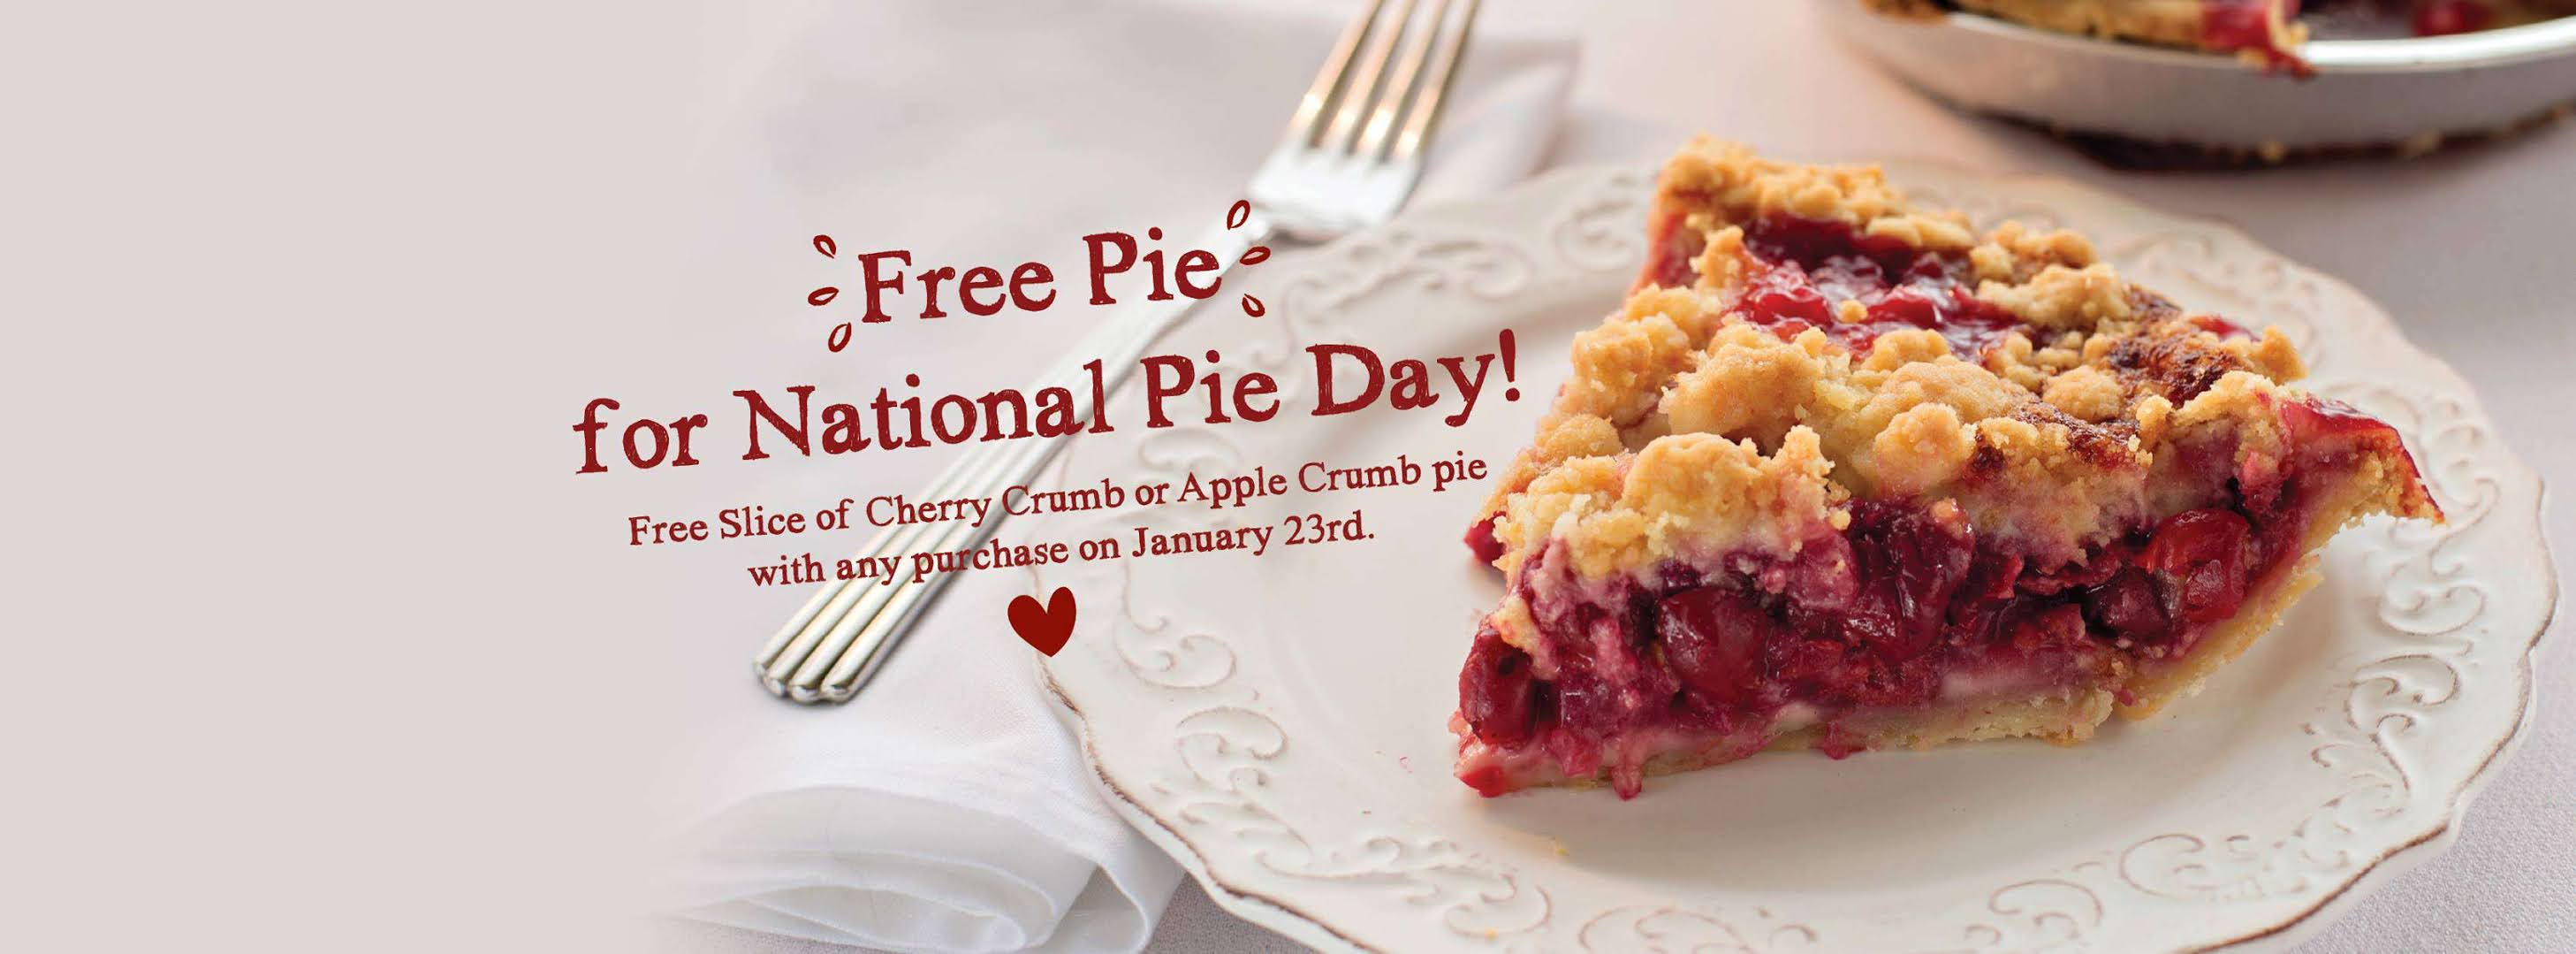 National Pie Day Wishes Sweet Images